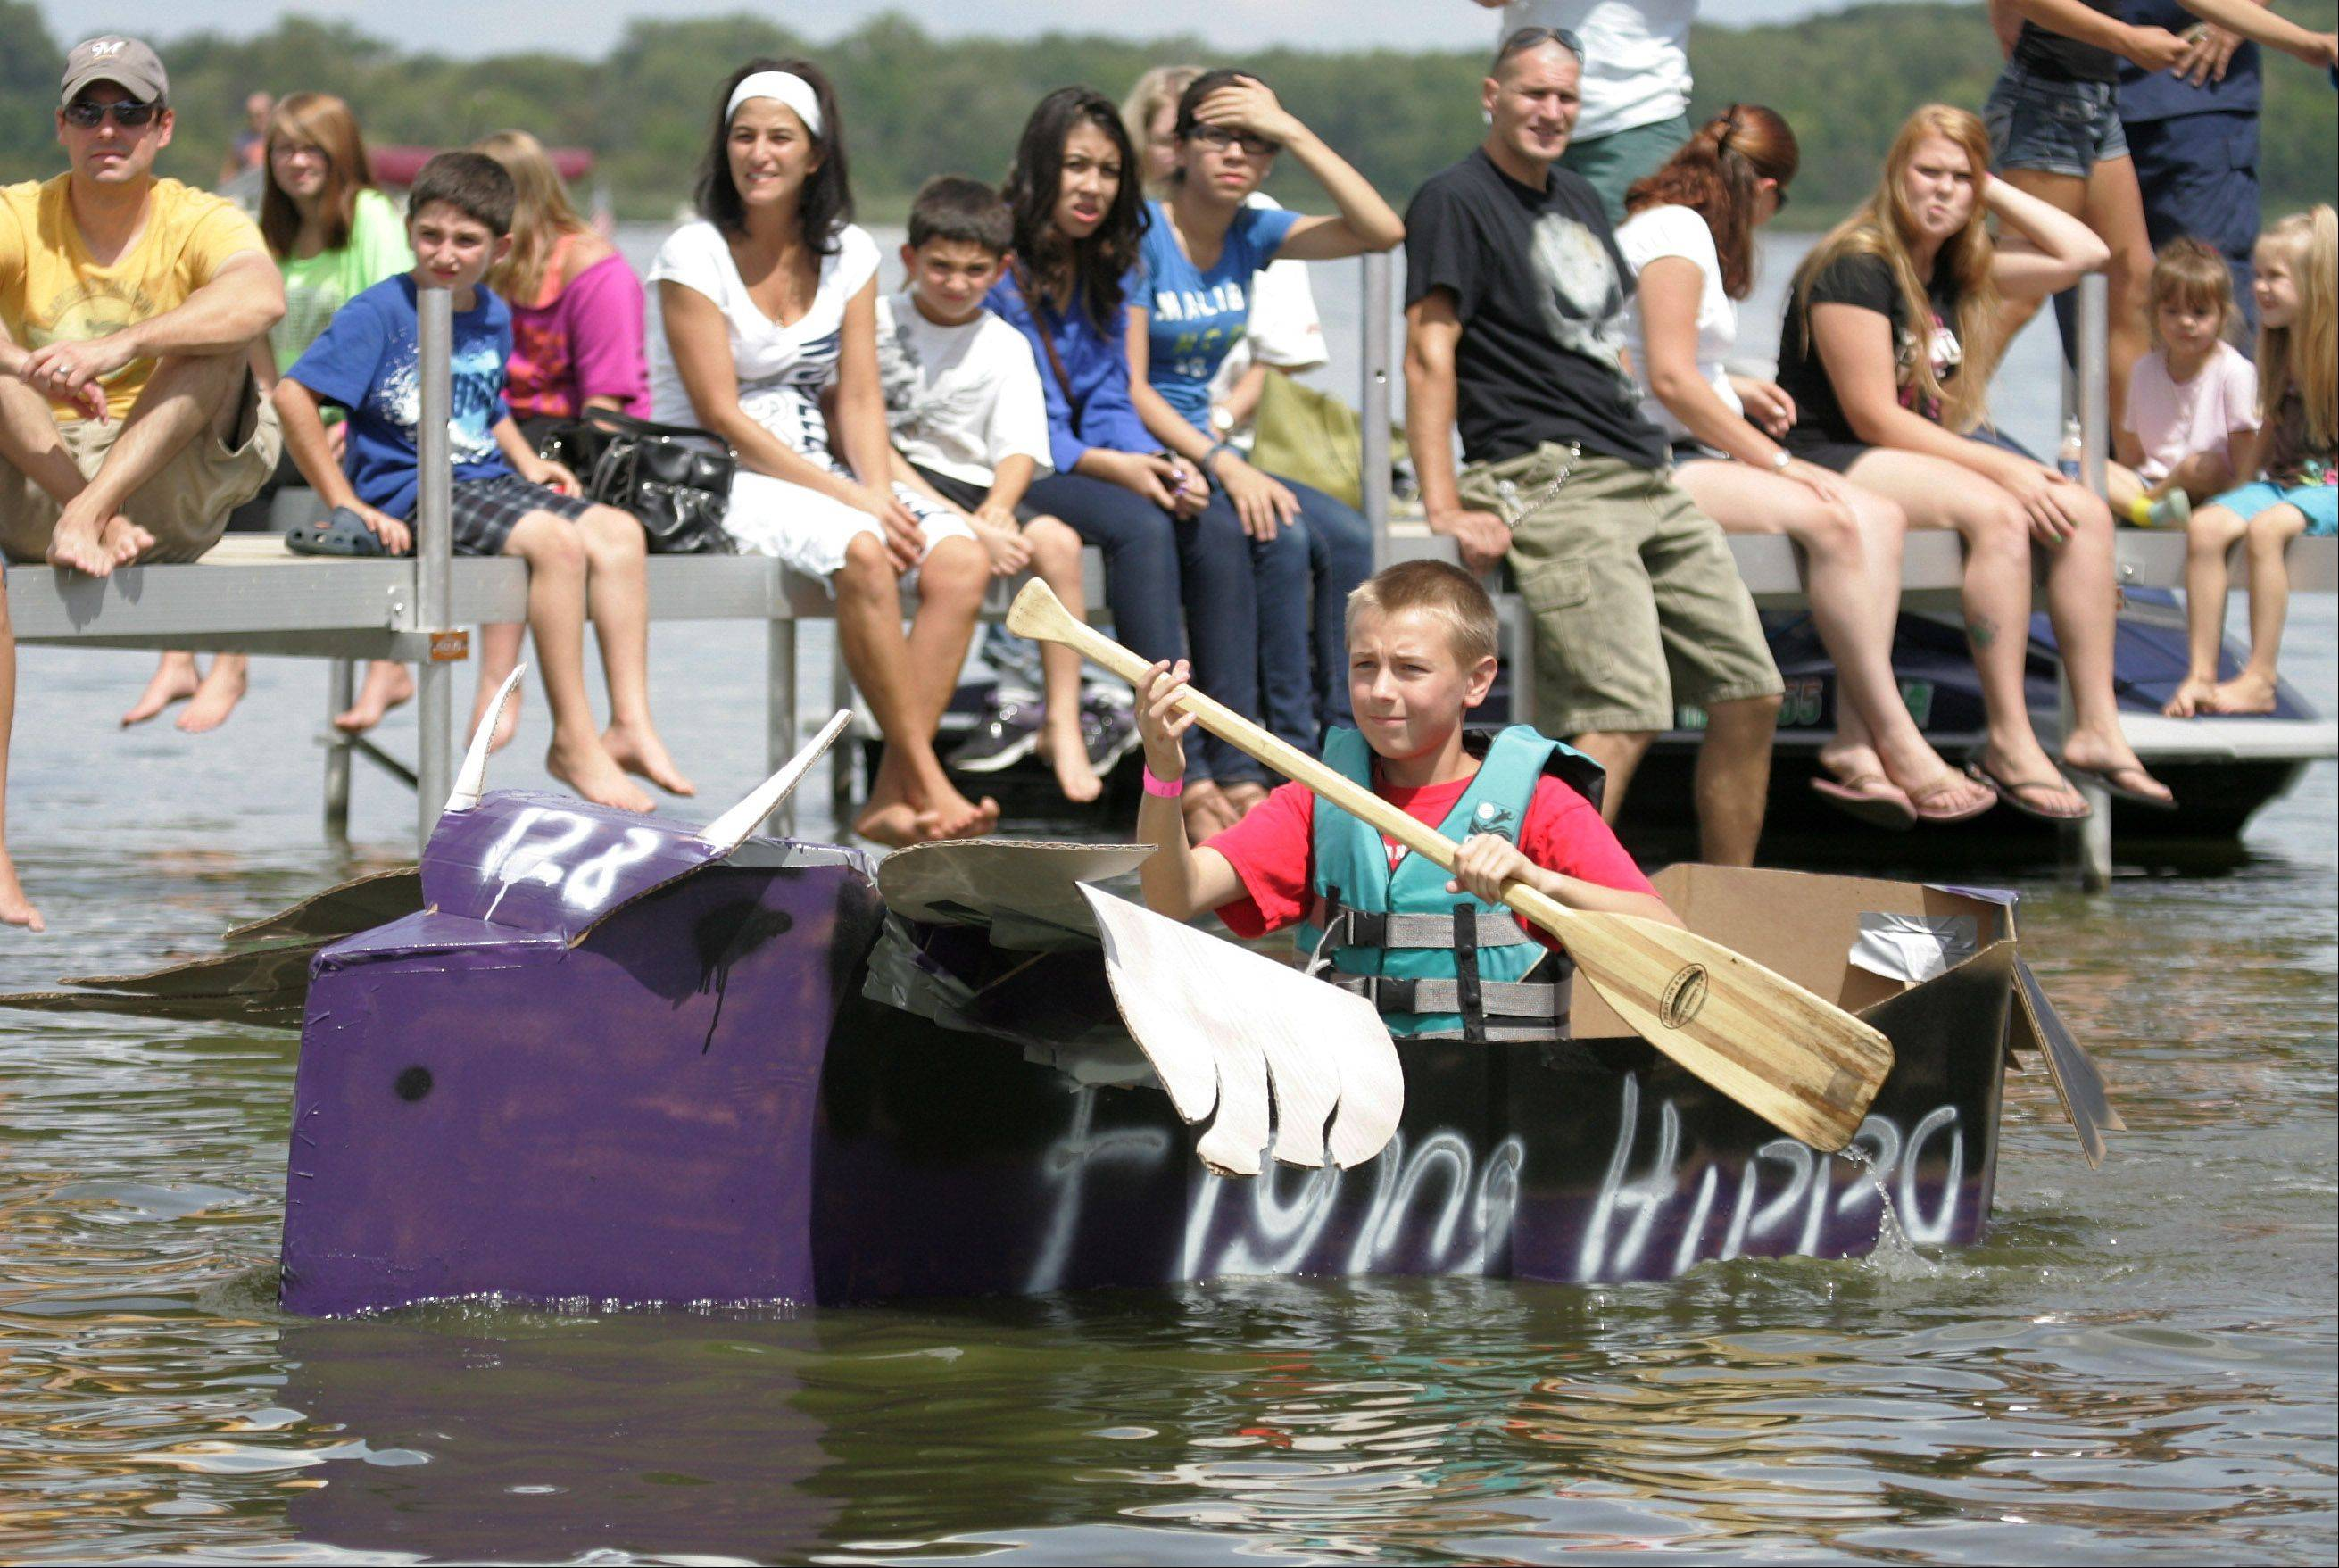 The annual Cardboard Cup Regatta Sunday at Lakefront Park sponsored by the Village of Fox Lake Parks and Recreation Department. Contestants built boats made strictly of cardboard, duct tape and paint and raced for medals and trophies.